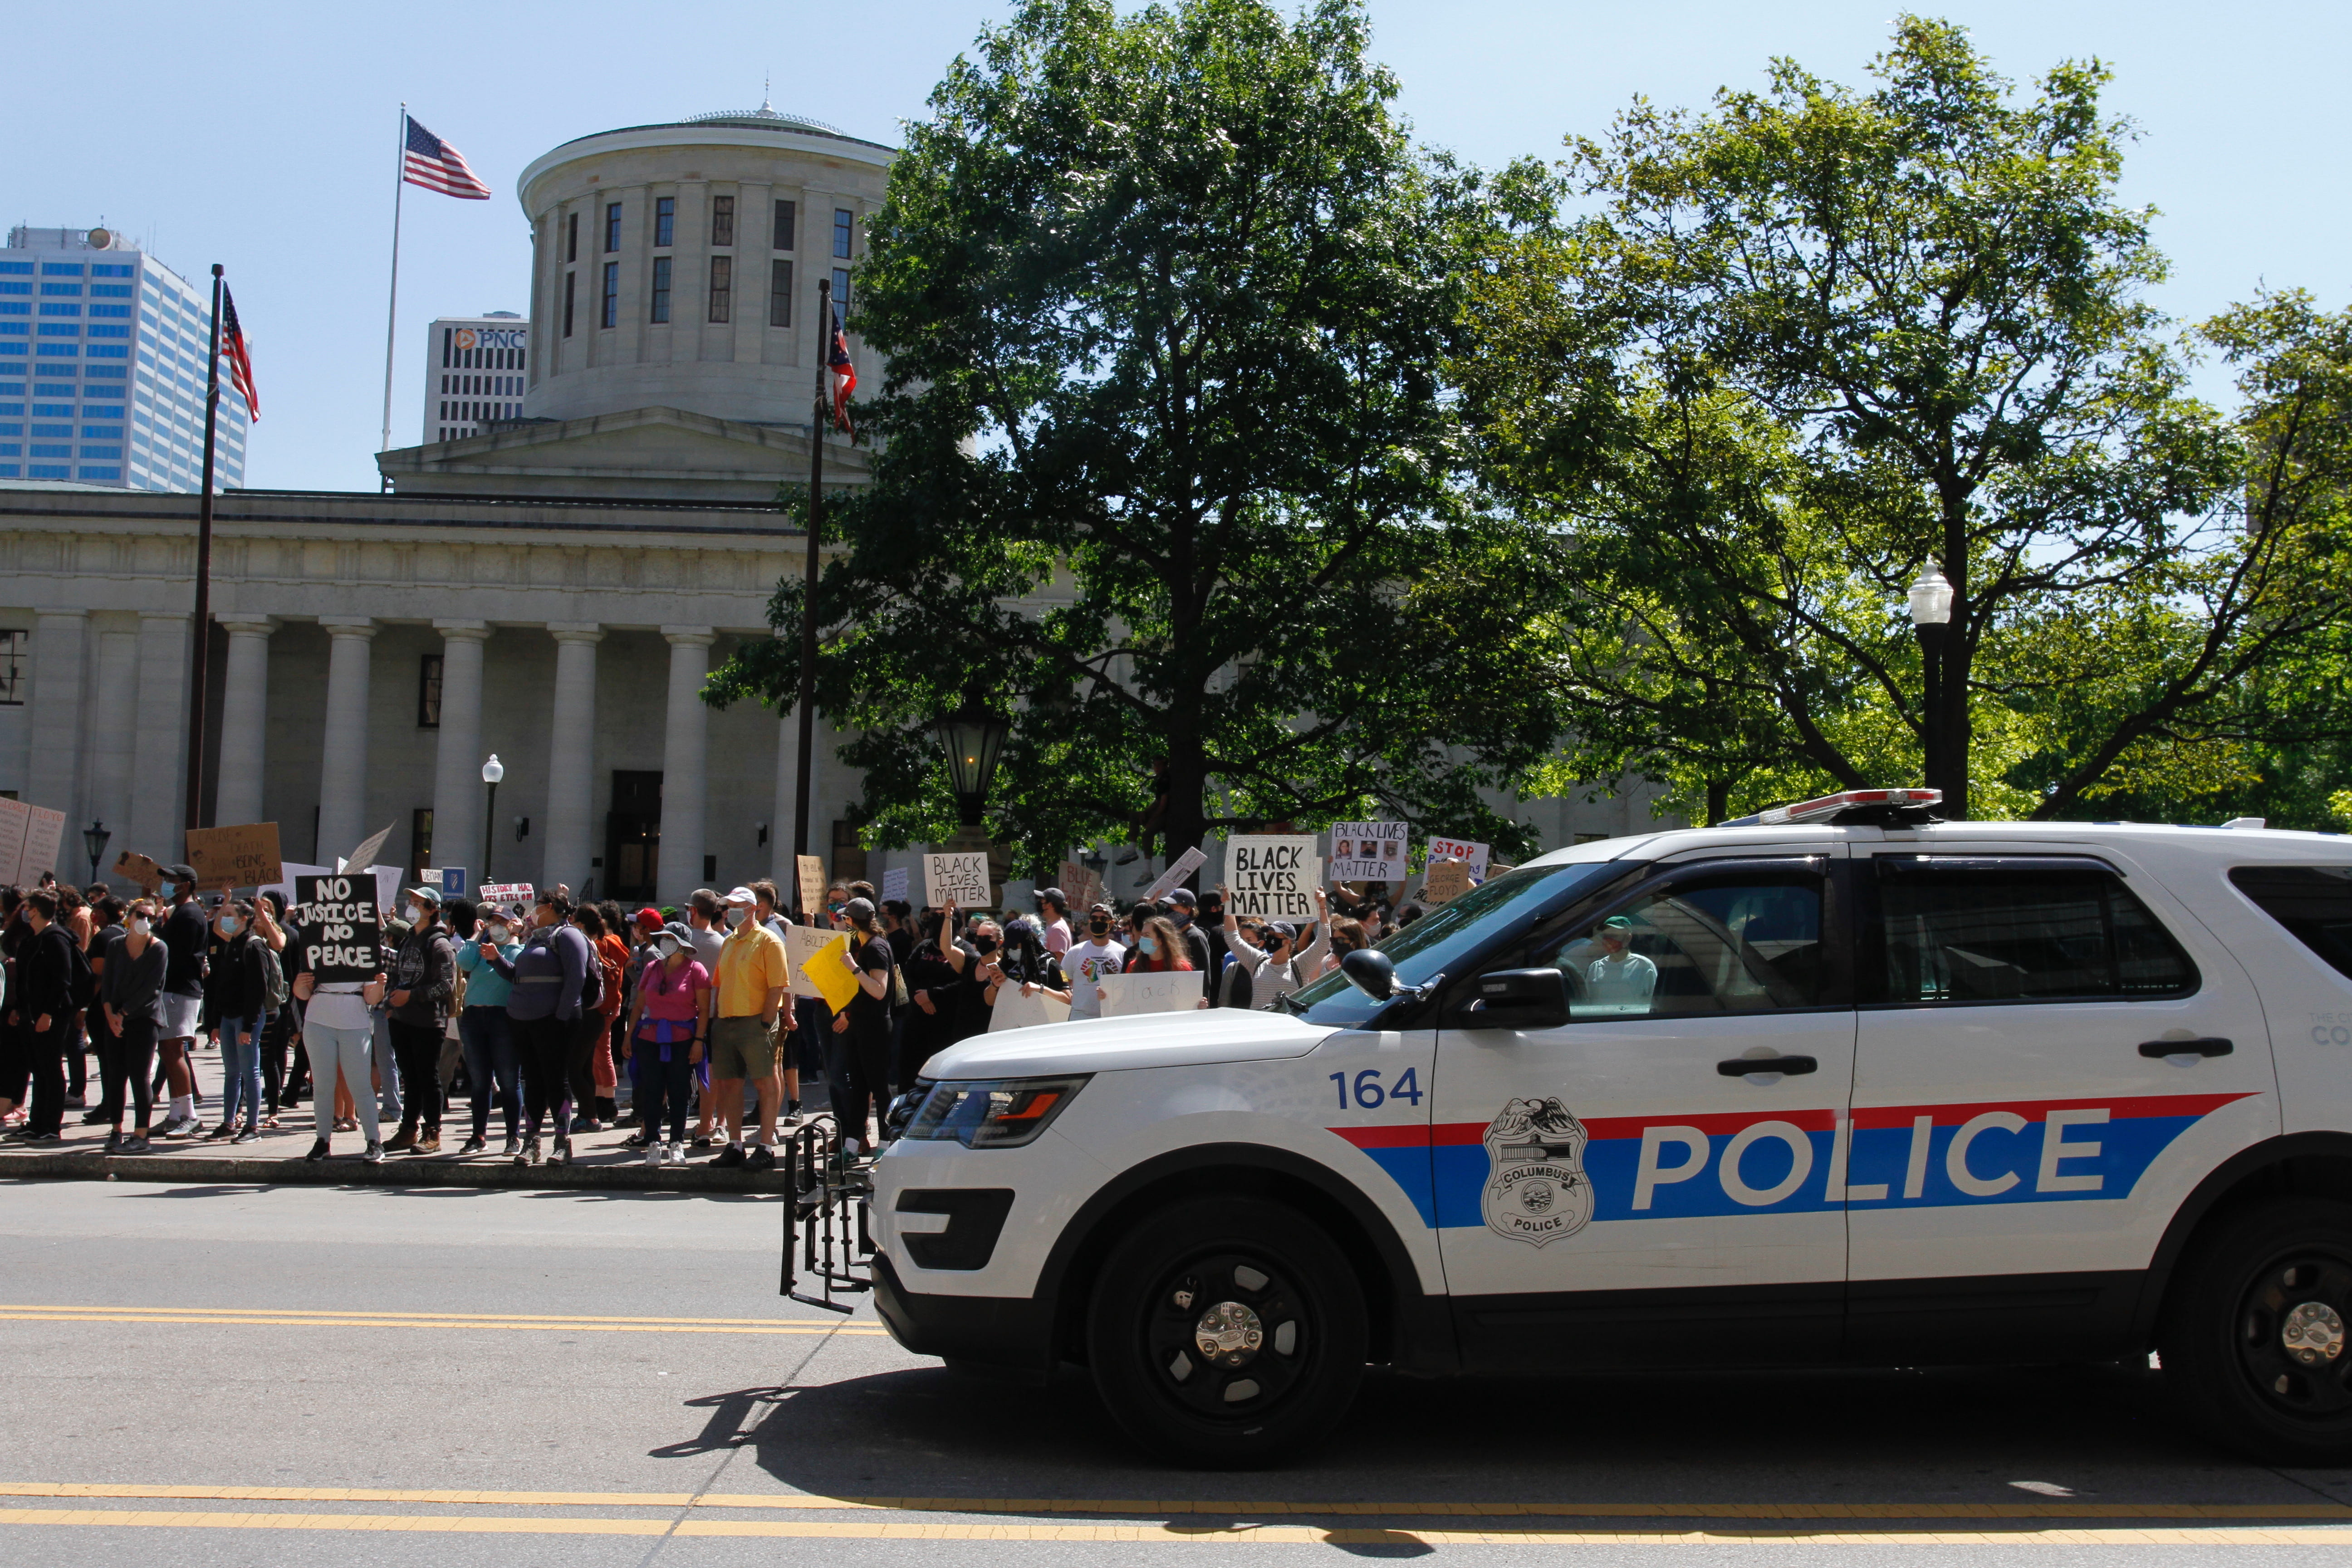 Columbus Police car outside the Ohio Statehouse where protesters gathered.